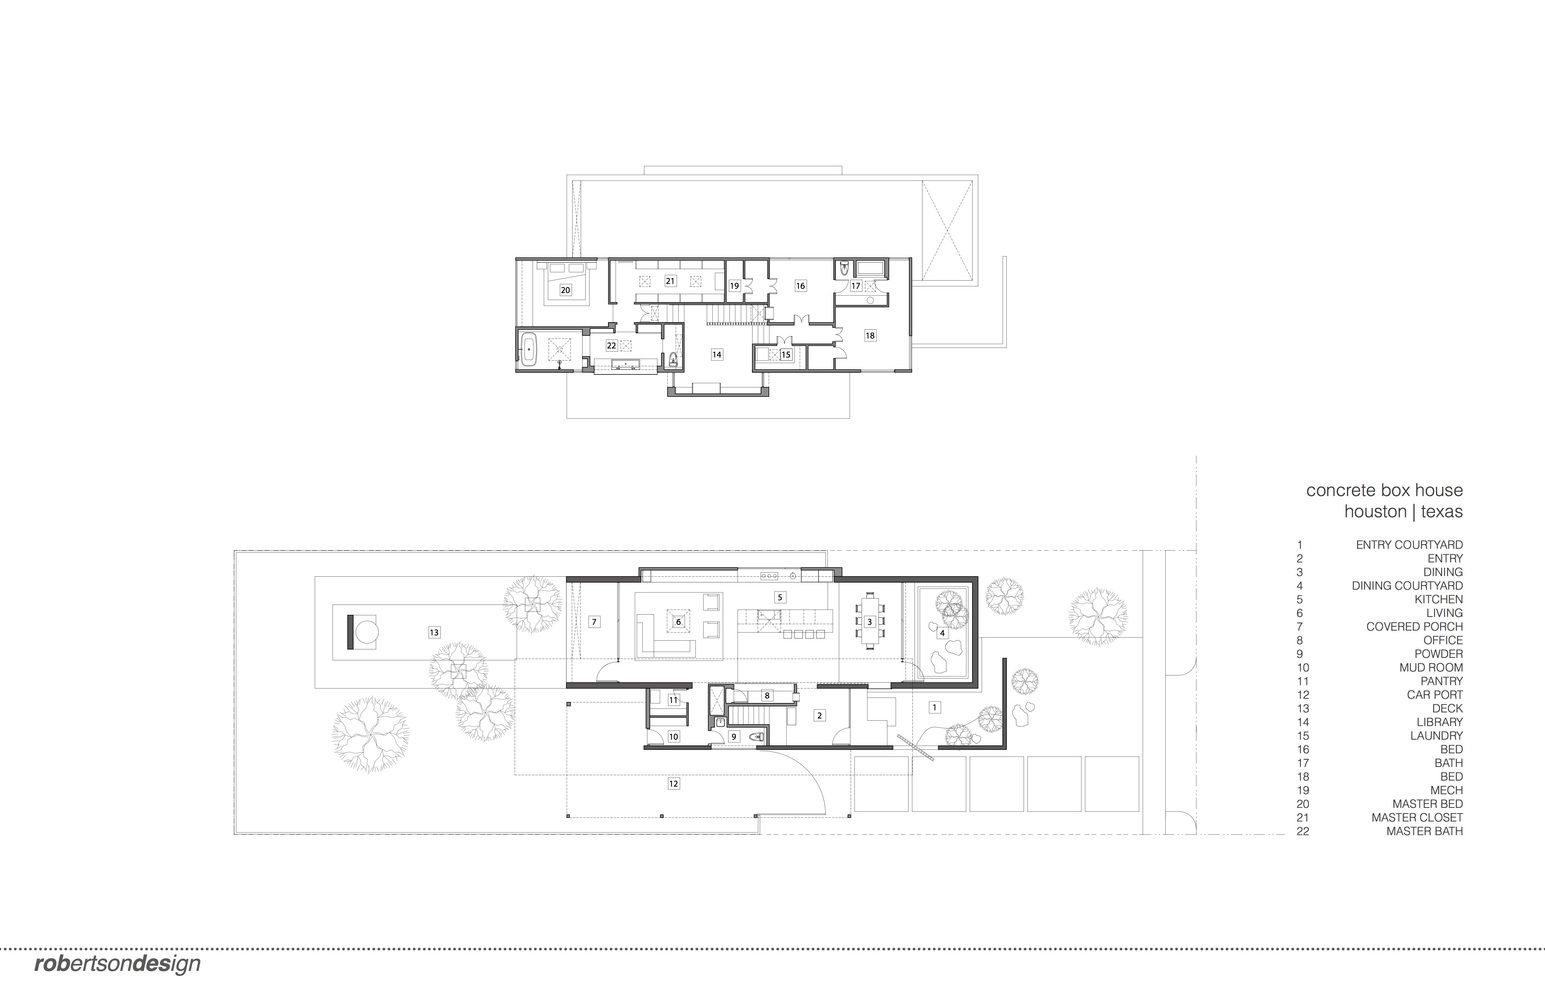 Gallery Of Concrete Box House Robertson Design 32 Box Houses House And Home Magazine Floor Plan Design